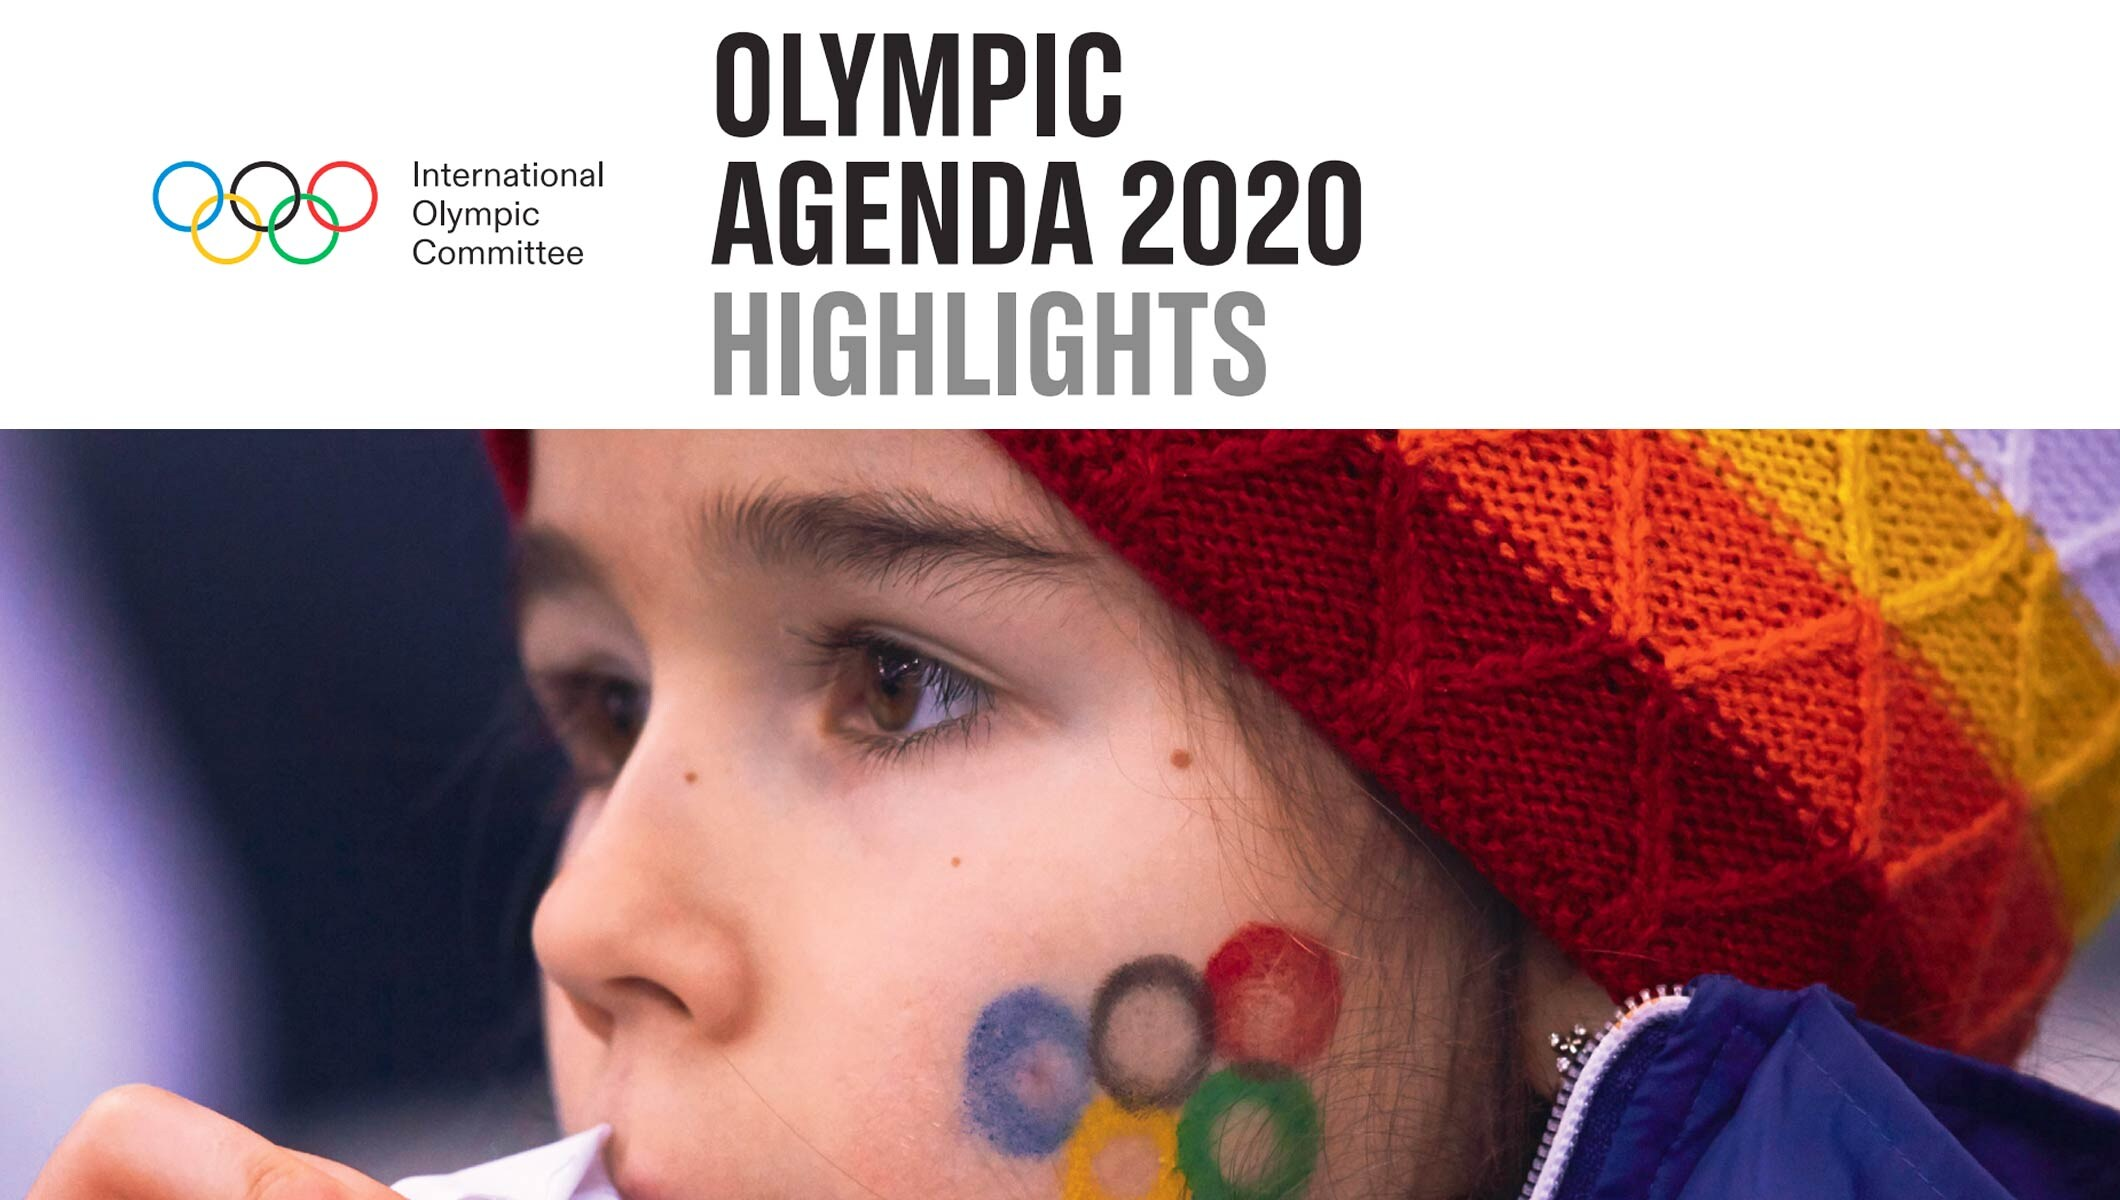 Olympic Agenda 2020 highlights